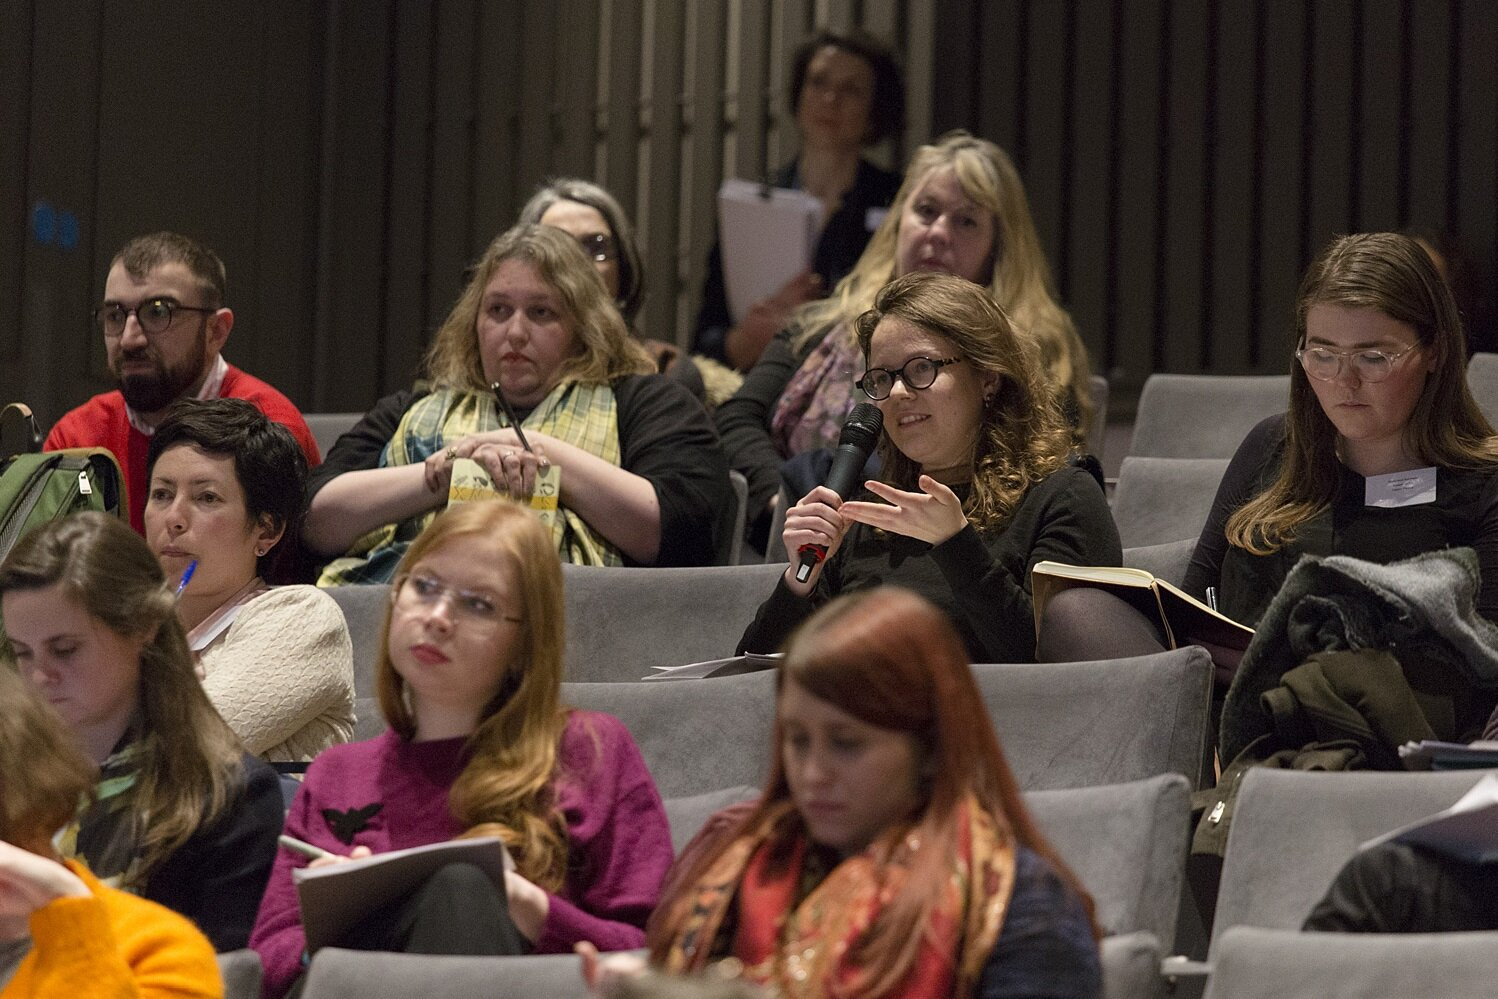 DELEGATES AT THE JOINT SSN CONFERENCE 'WHY EXHIBITIONS?', 21-22 FEB. 2018 © THE NATIONAL GALLERY